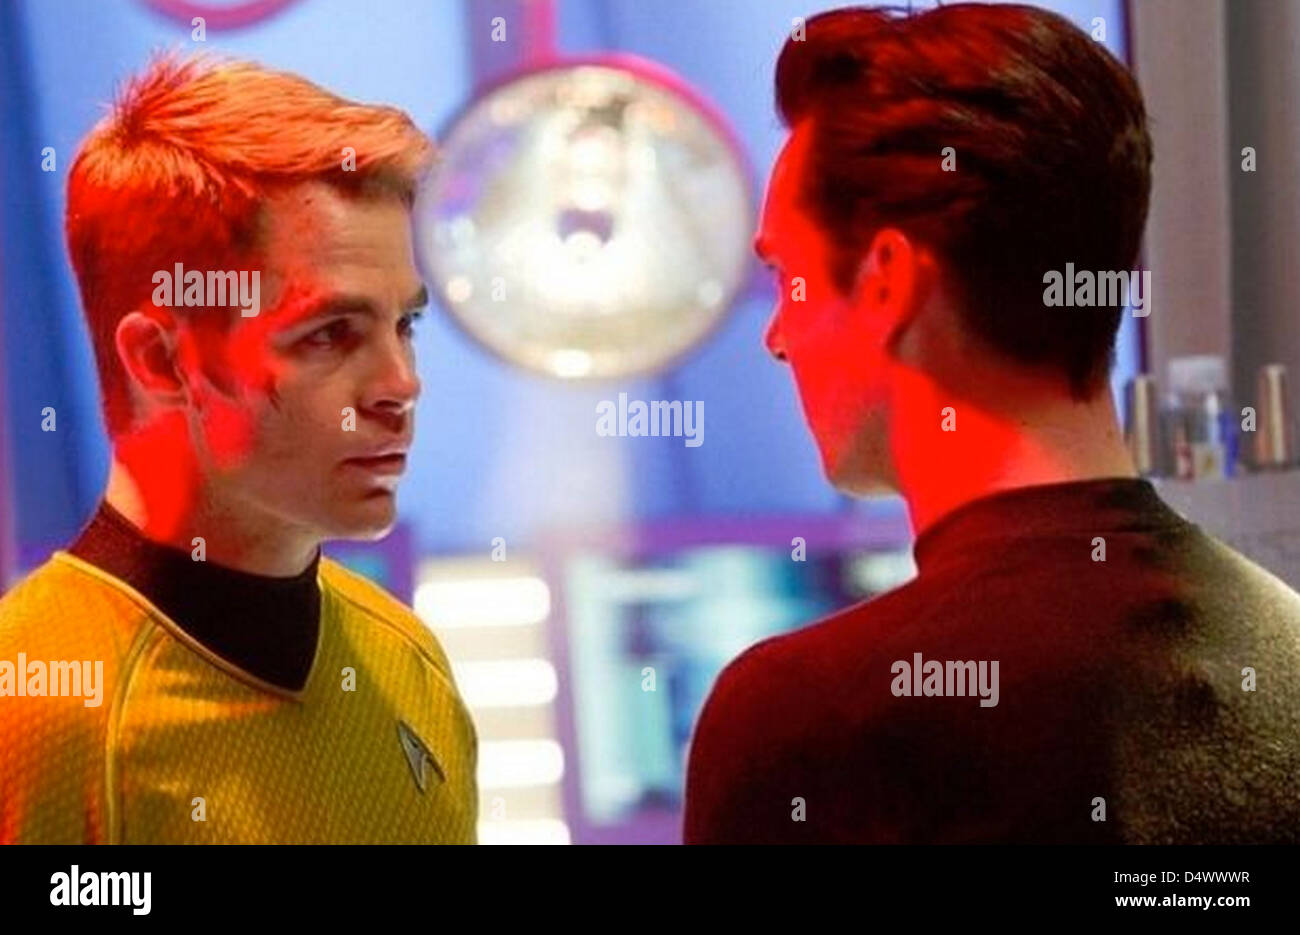 STAR TREK INTO DARKNESS  2013 Paramount Pictures film with Chris Pine at left and Benedict Cumberbatch - Stock Image